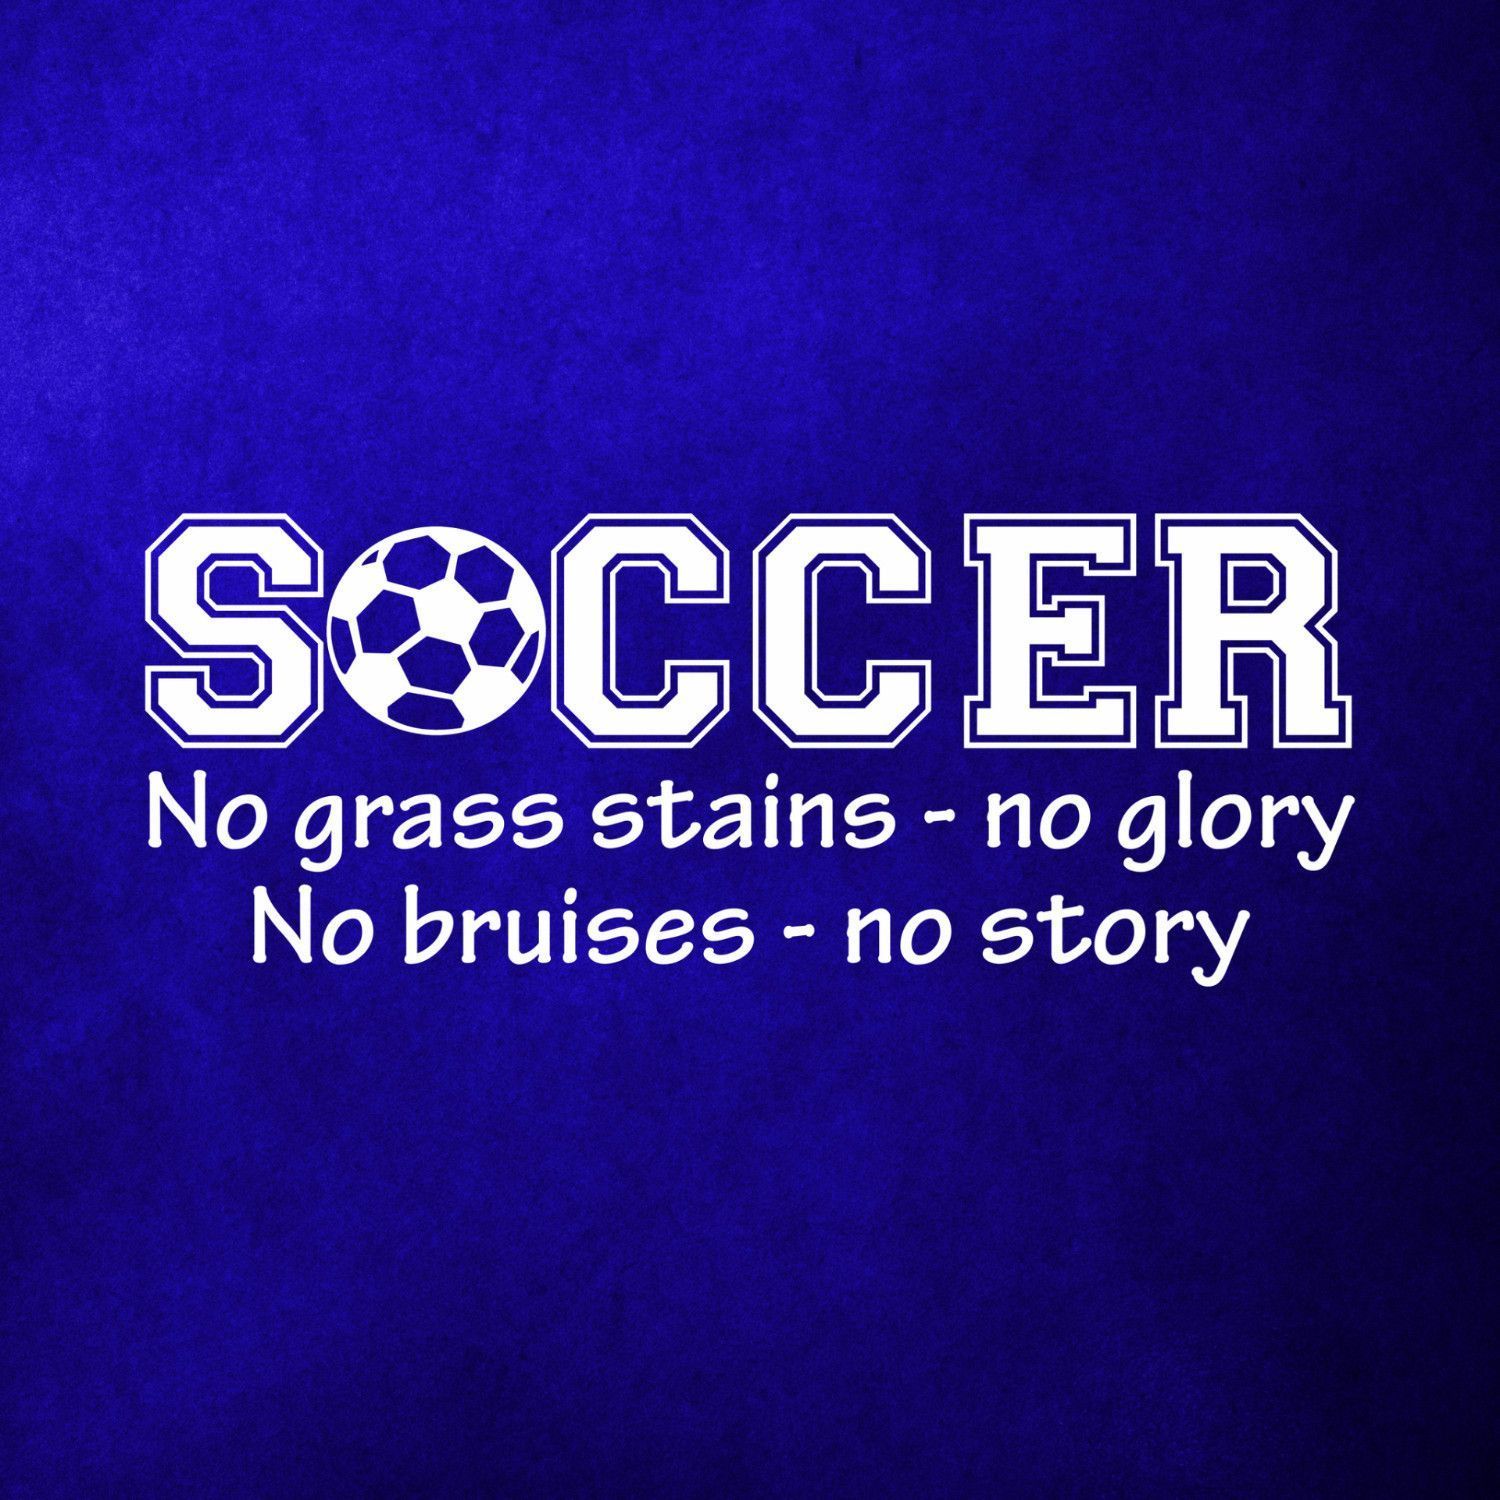 Soccer no grass stains no glory wall art decal quote words lettering